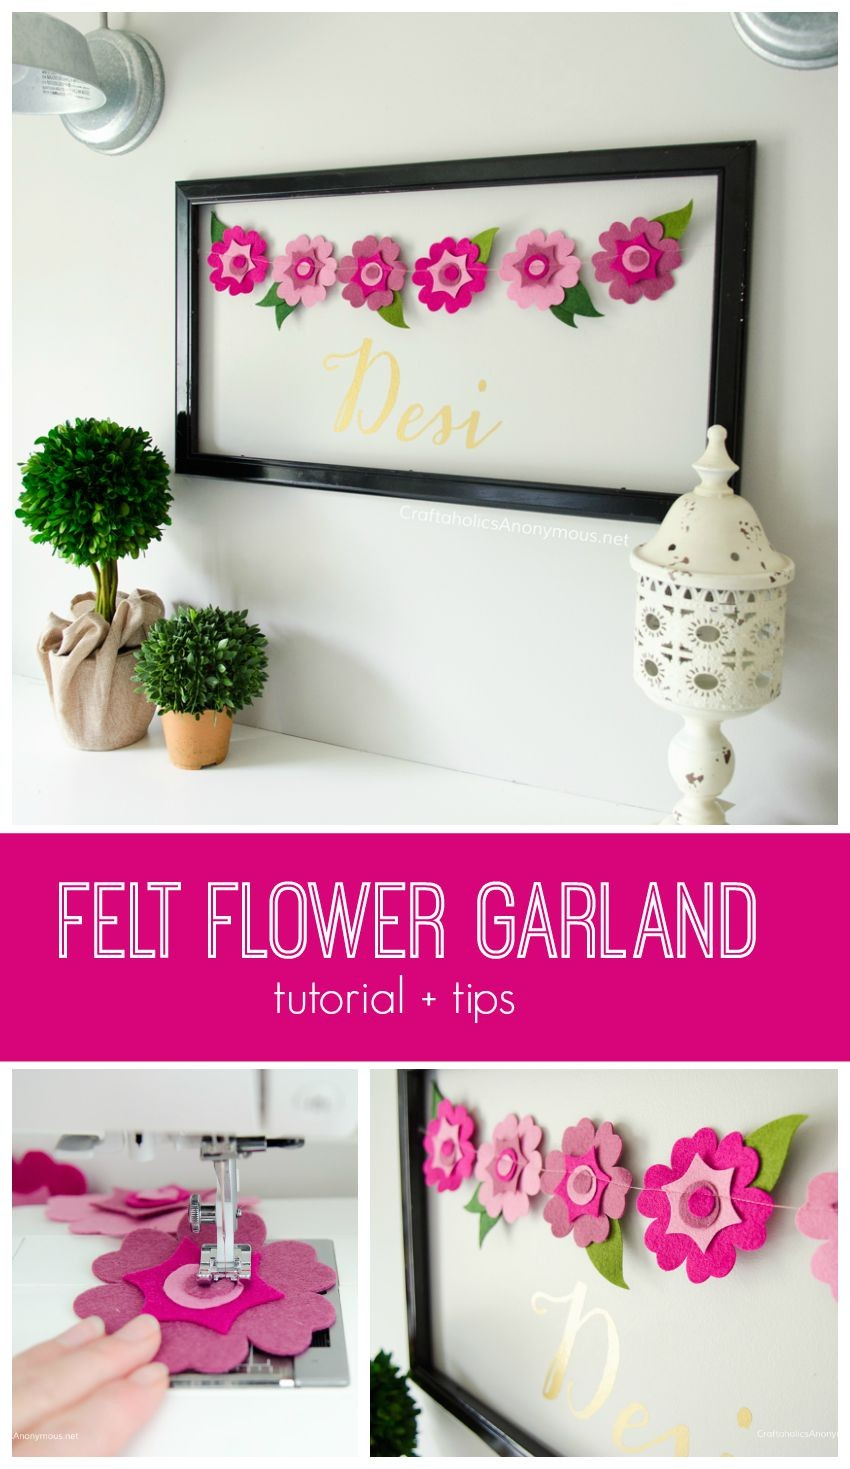 How to Make Felt Flower garland banner + tips and tricks. || includes a giveaway for a Cut N Boss die cutting tool!